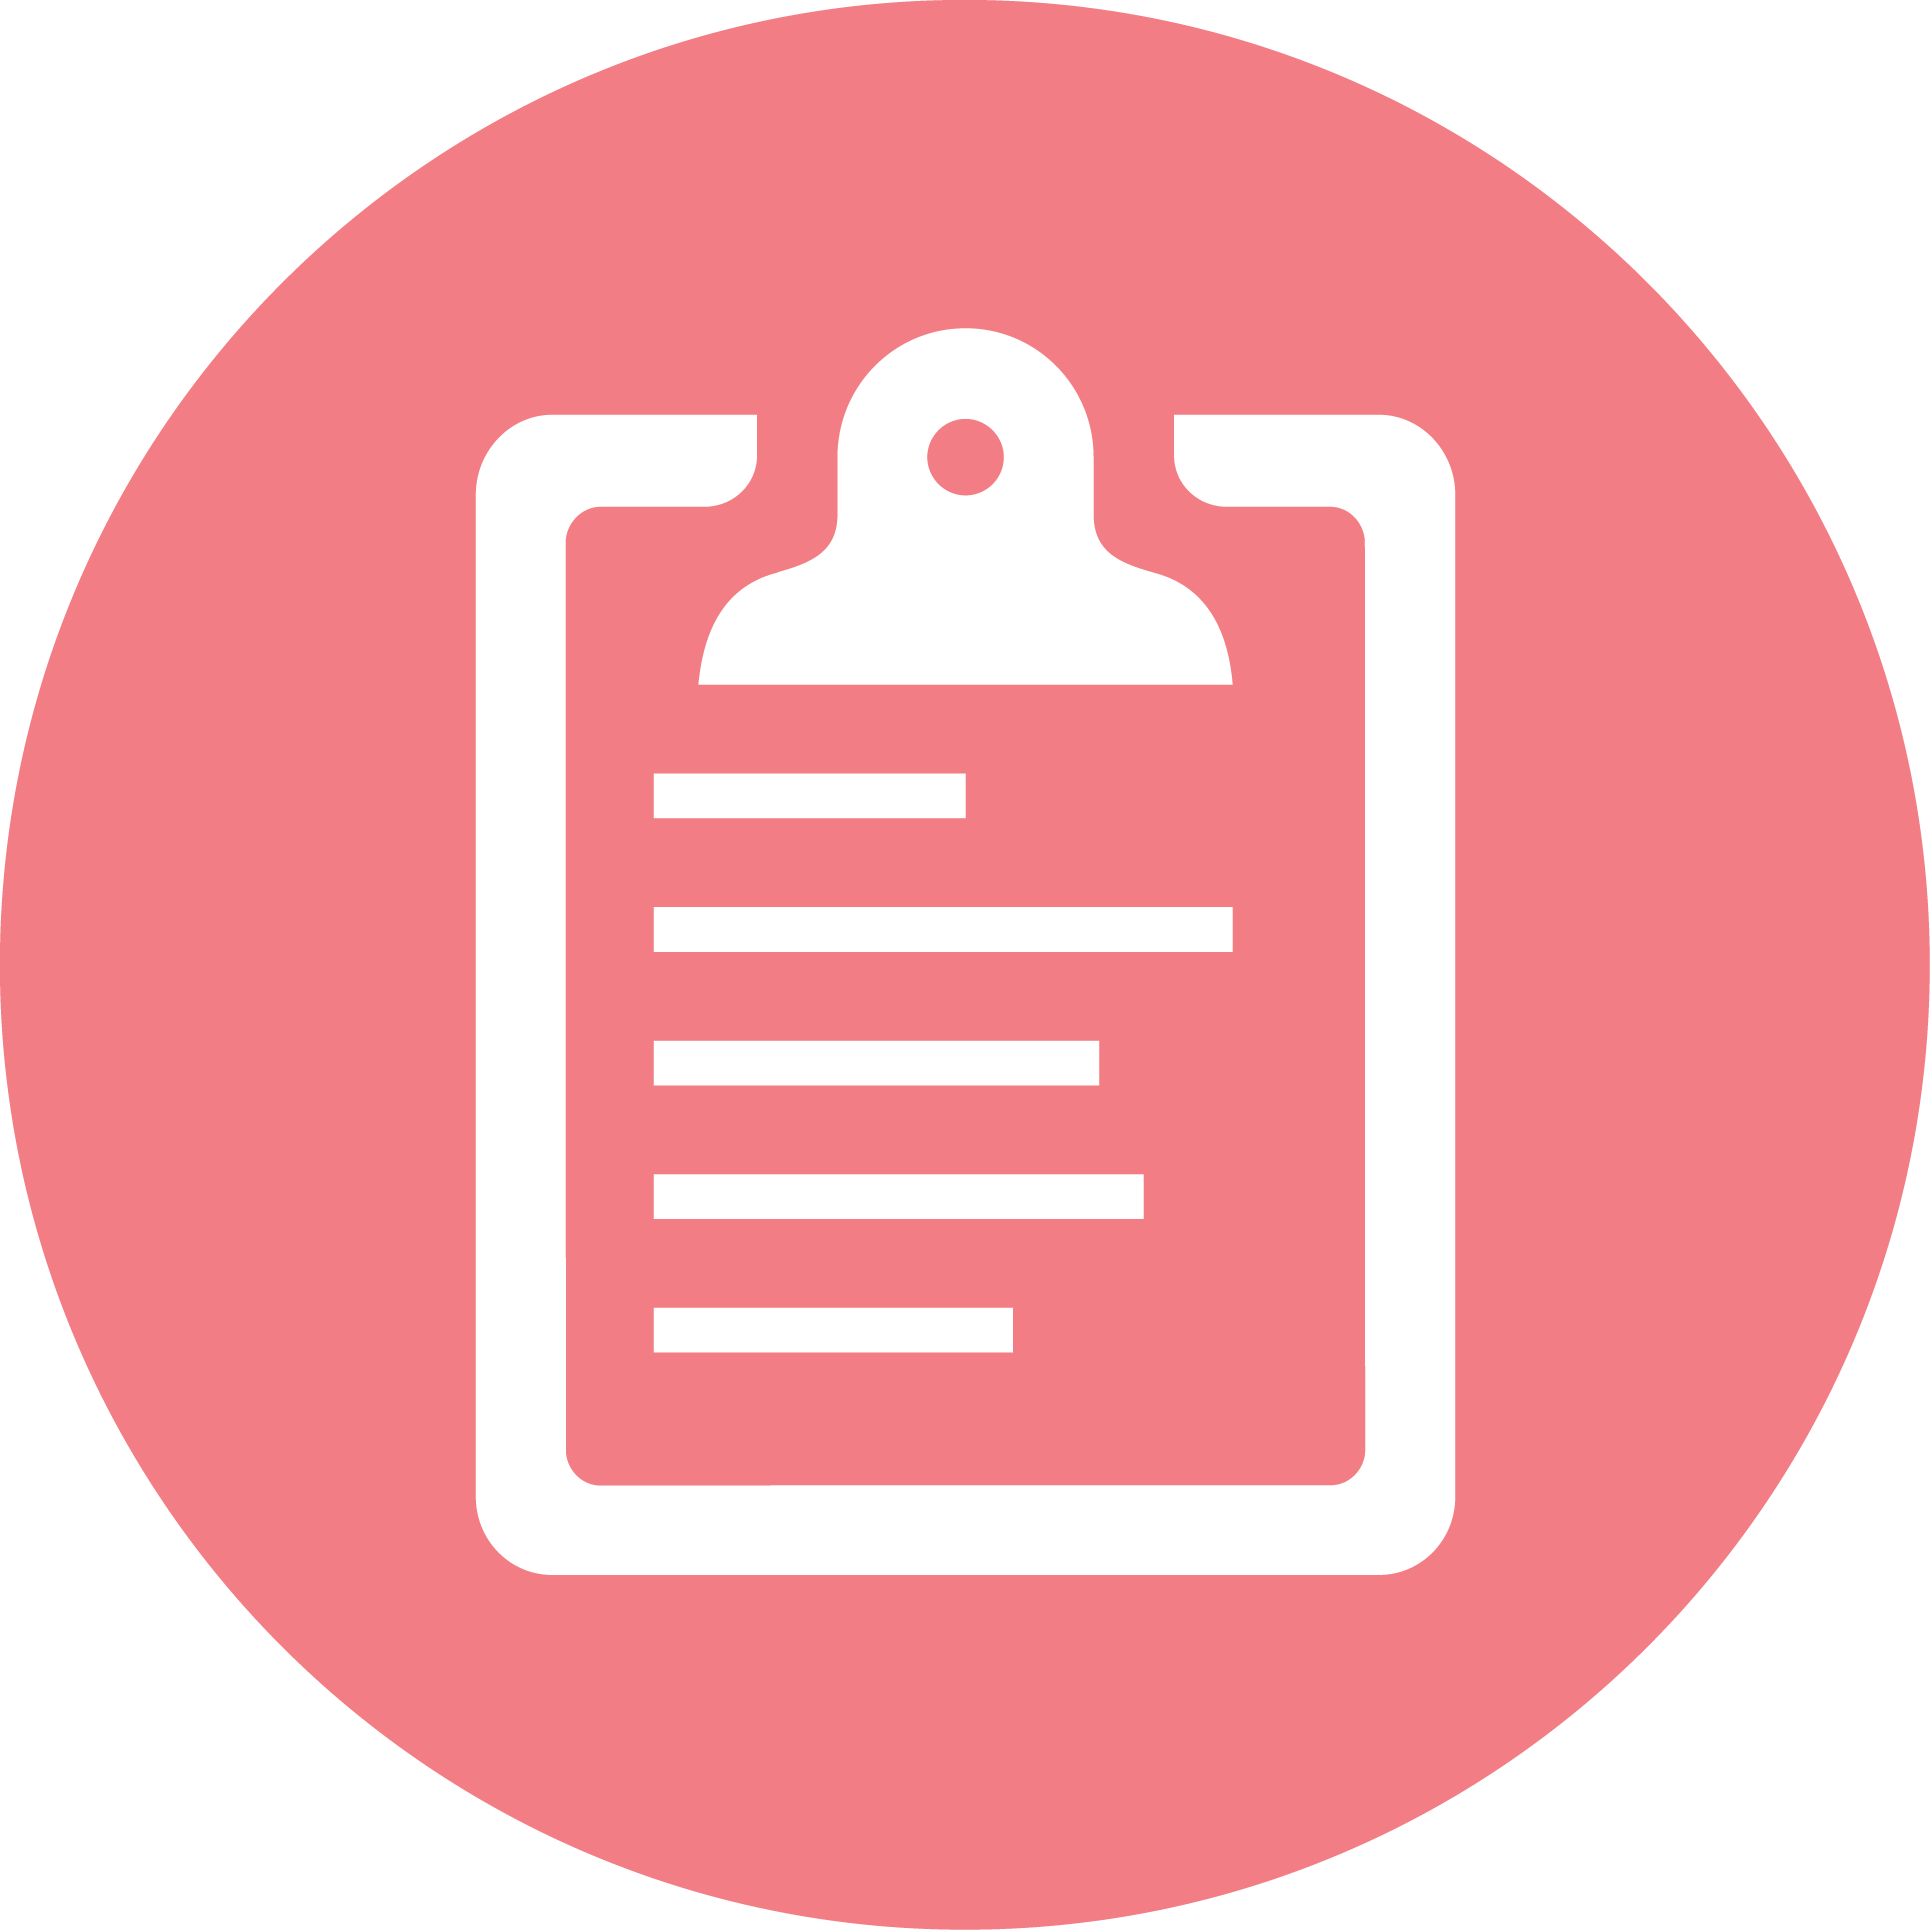 icon of annotation tool